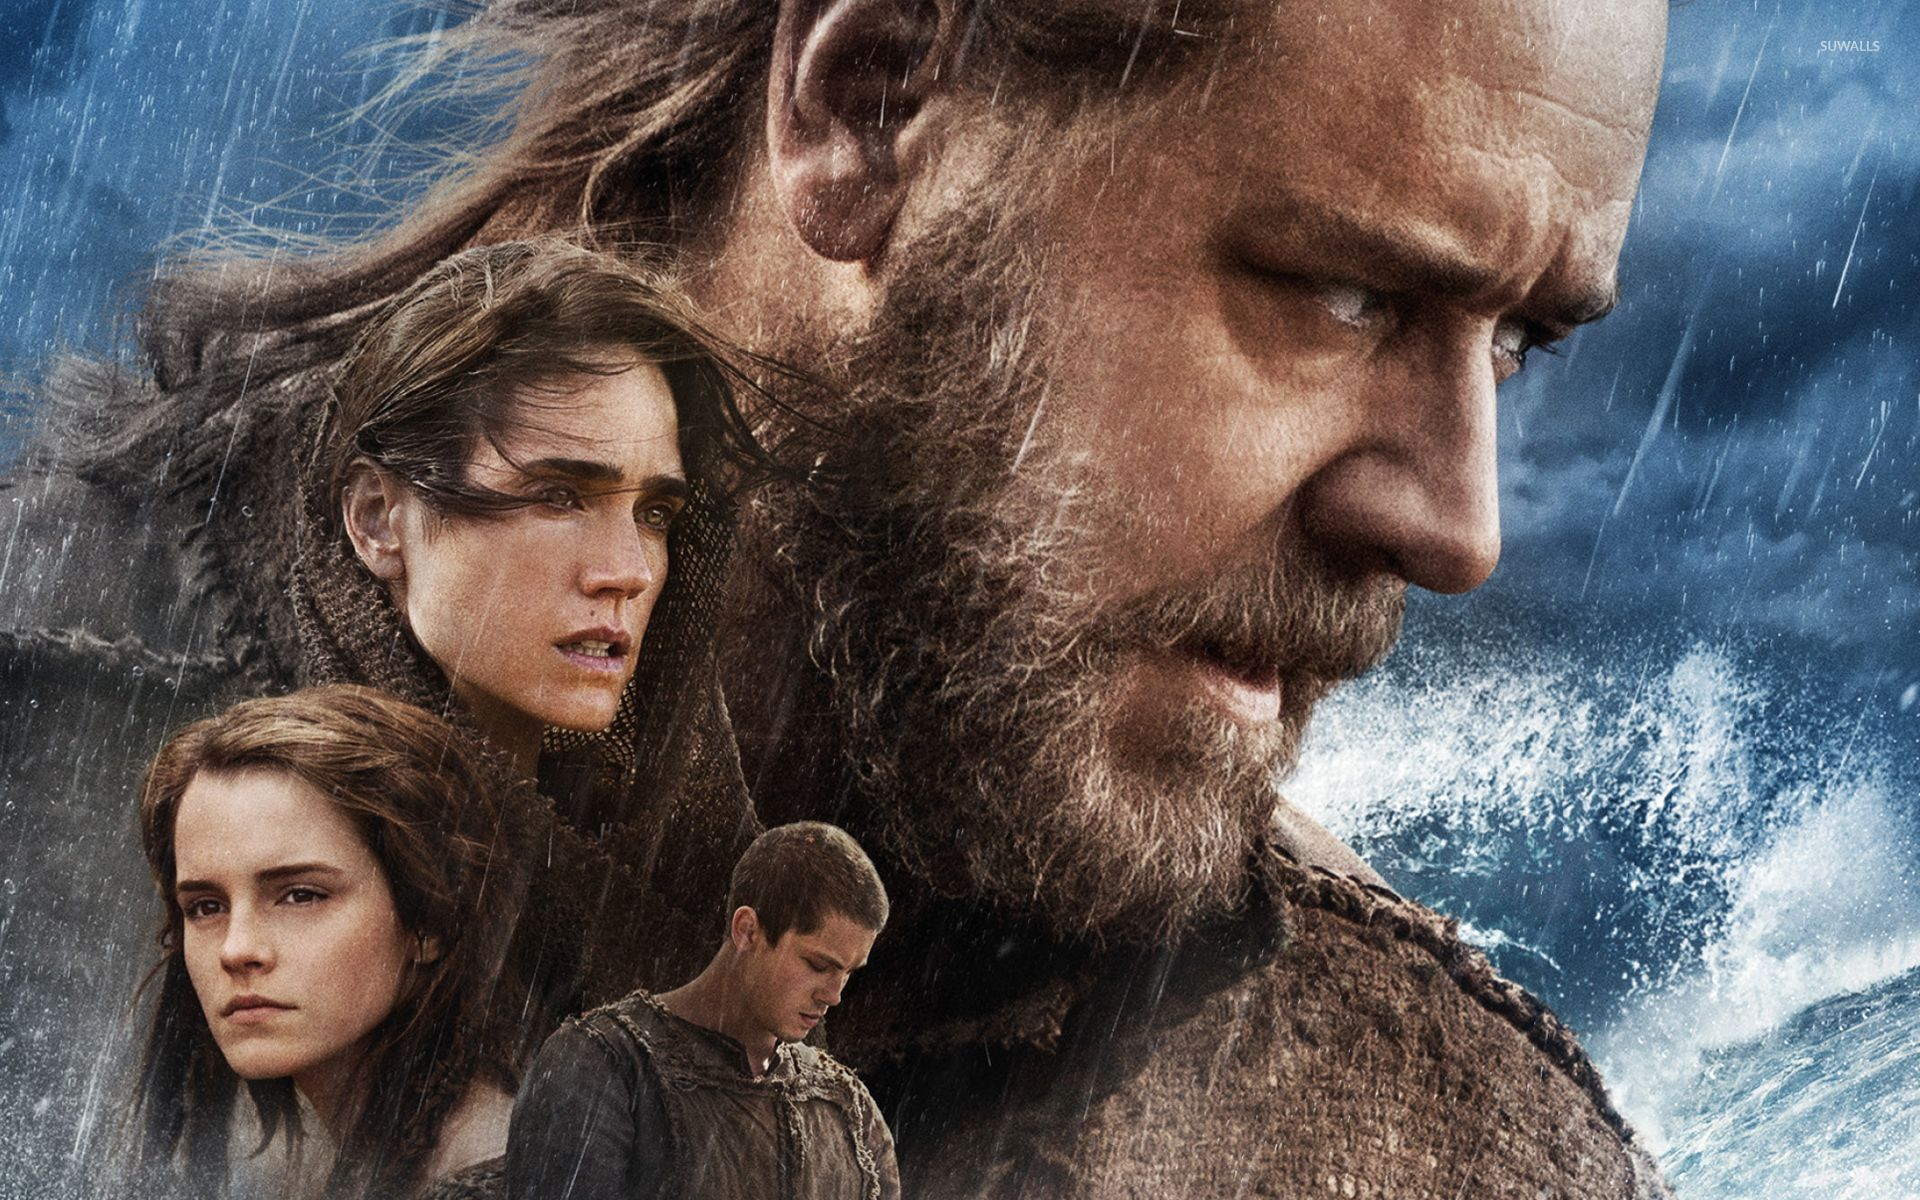 Noah wallpaper - Movie wallpapers - #29771